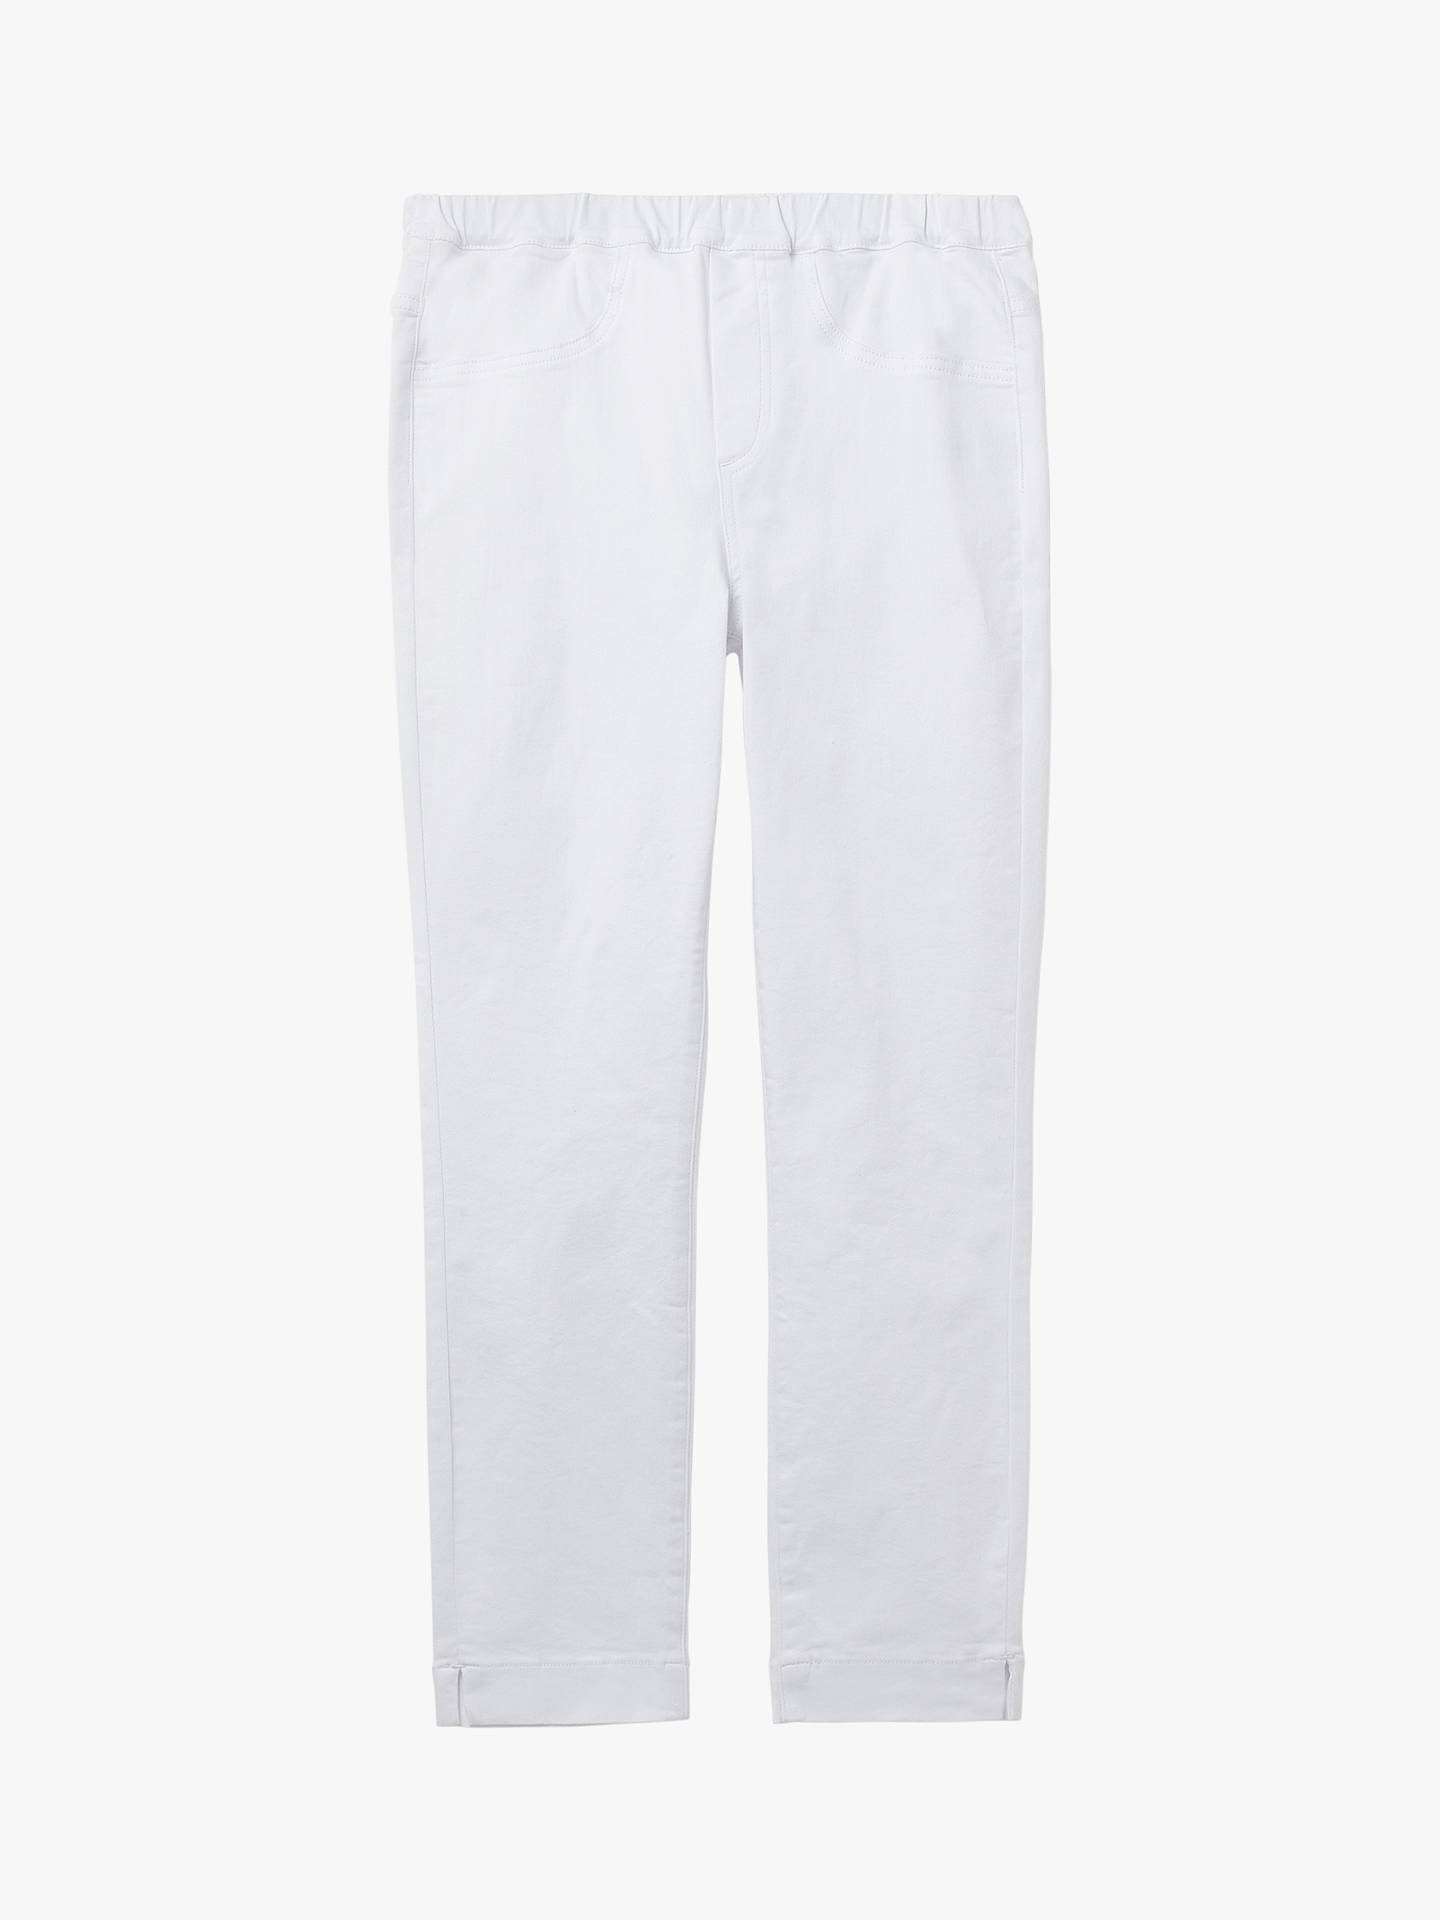 Buy White Stuff Jade Cropped Jeggings, White, 14R Online at johnlewis.com